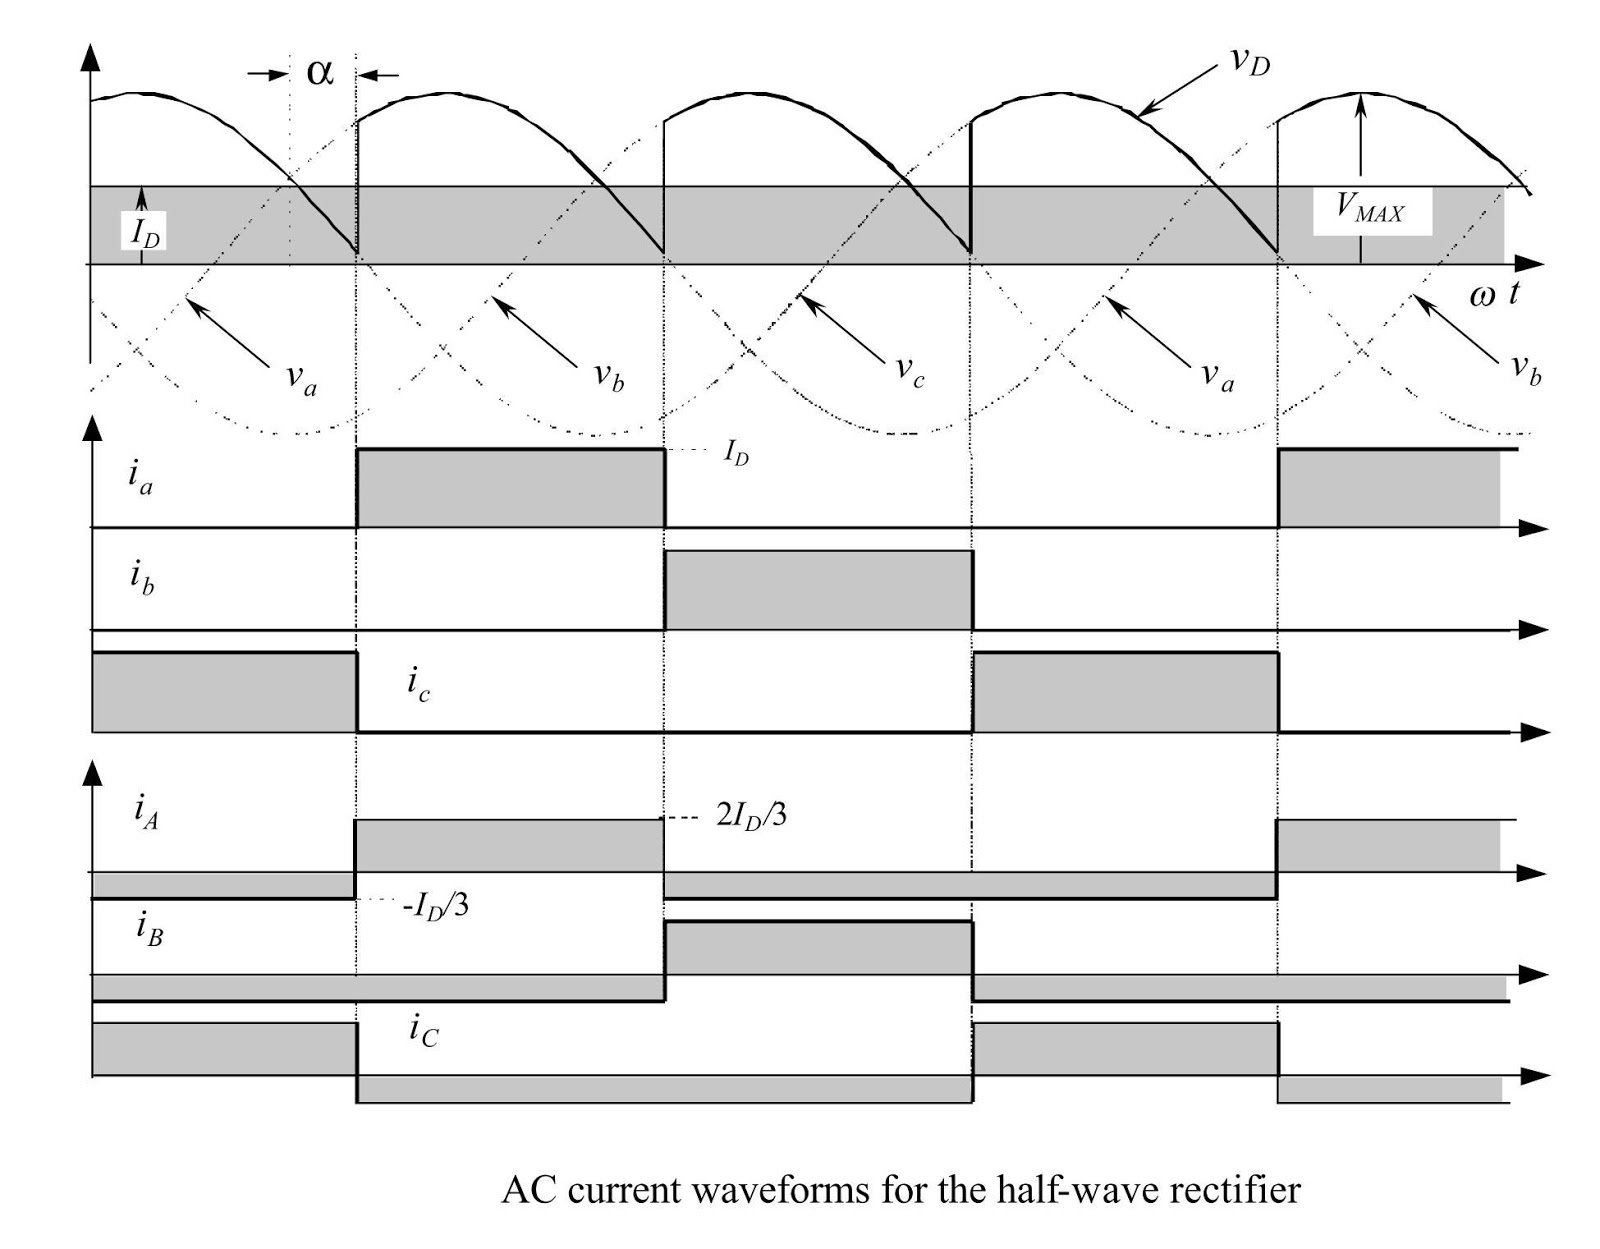 Flamingidea Controlled Rectifier Types And Description Halfwave Topology The Circuit Is A Not Useful For High Power Applications Primary Currents Show Same Waveform But With Dc Component Removed